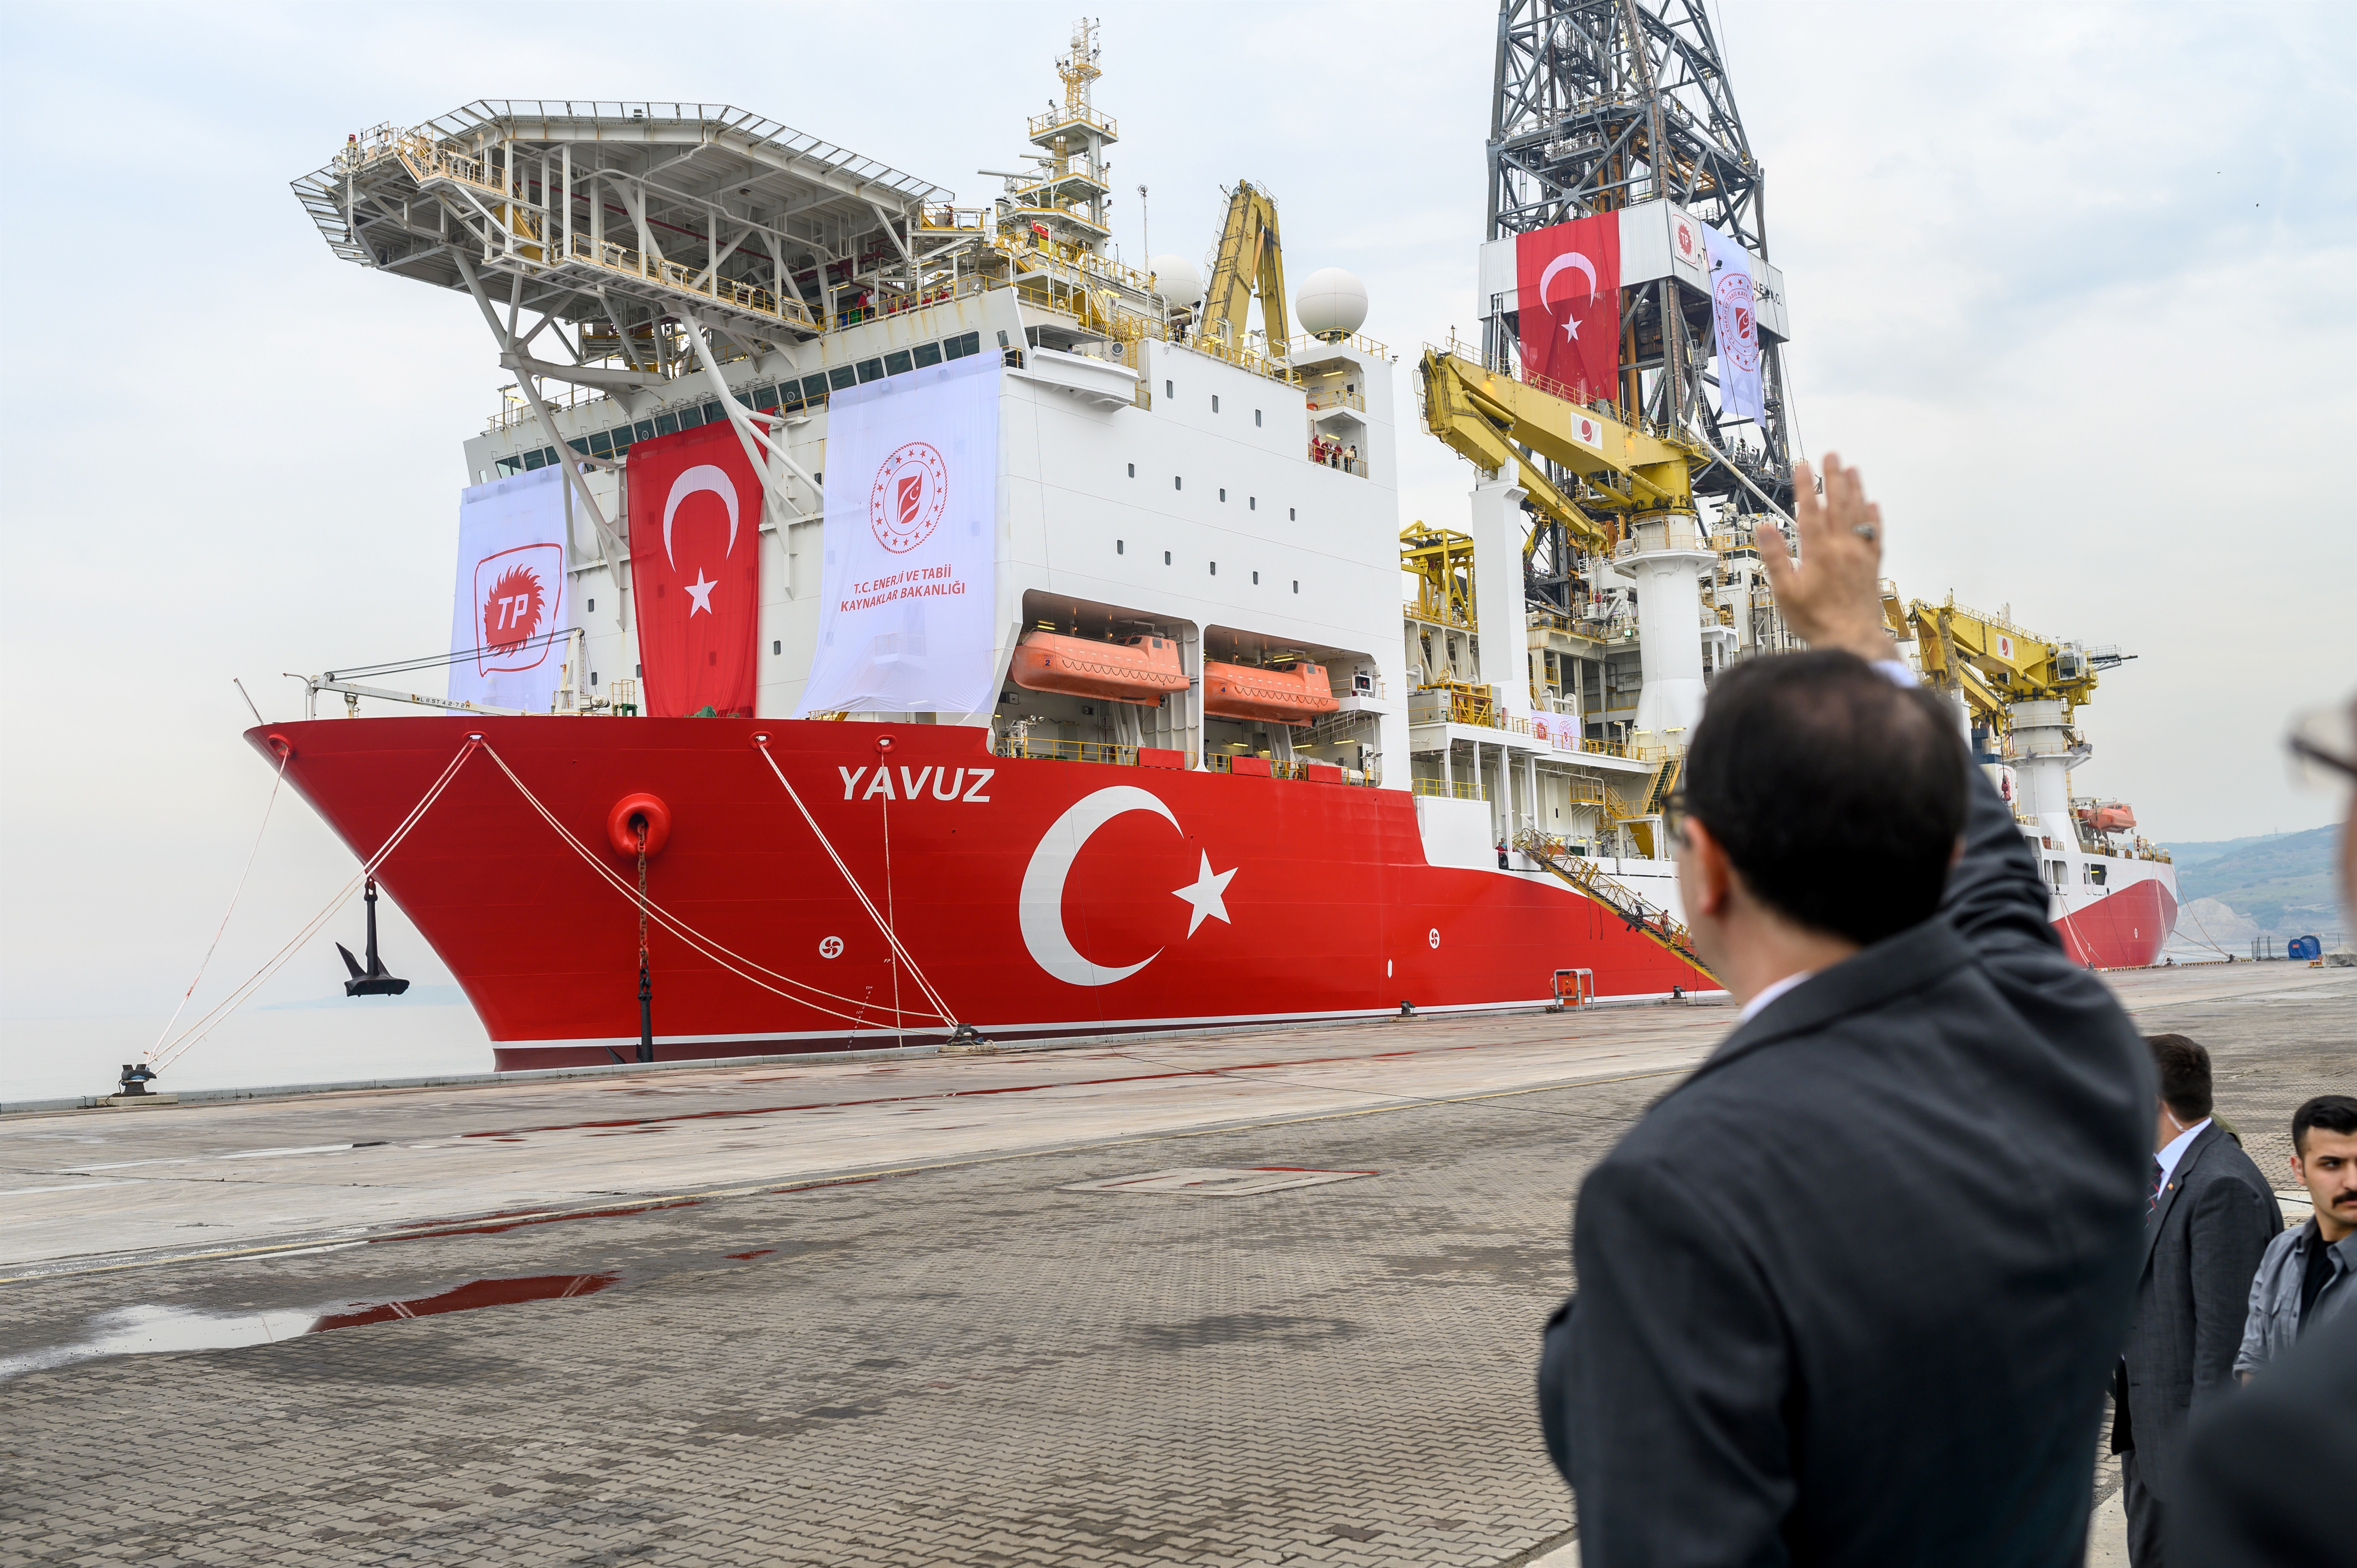 Turkey says to increase drilling activities in Eastern Mediterranean despite EU sanctions decision